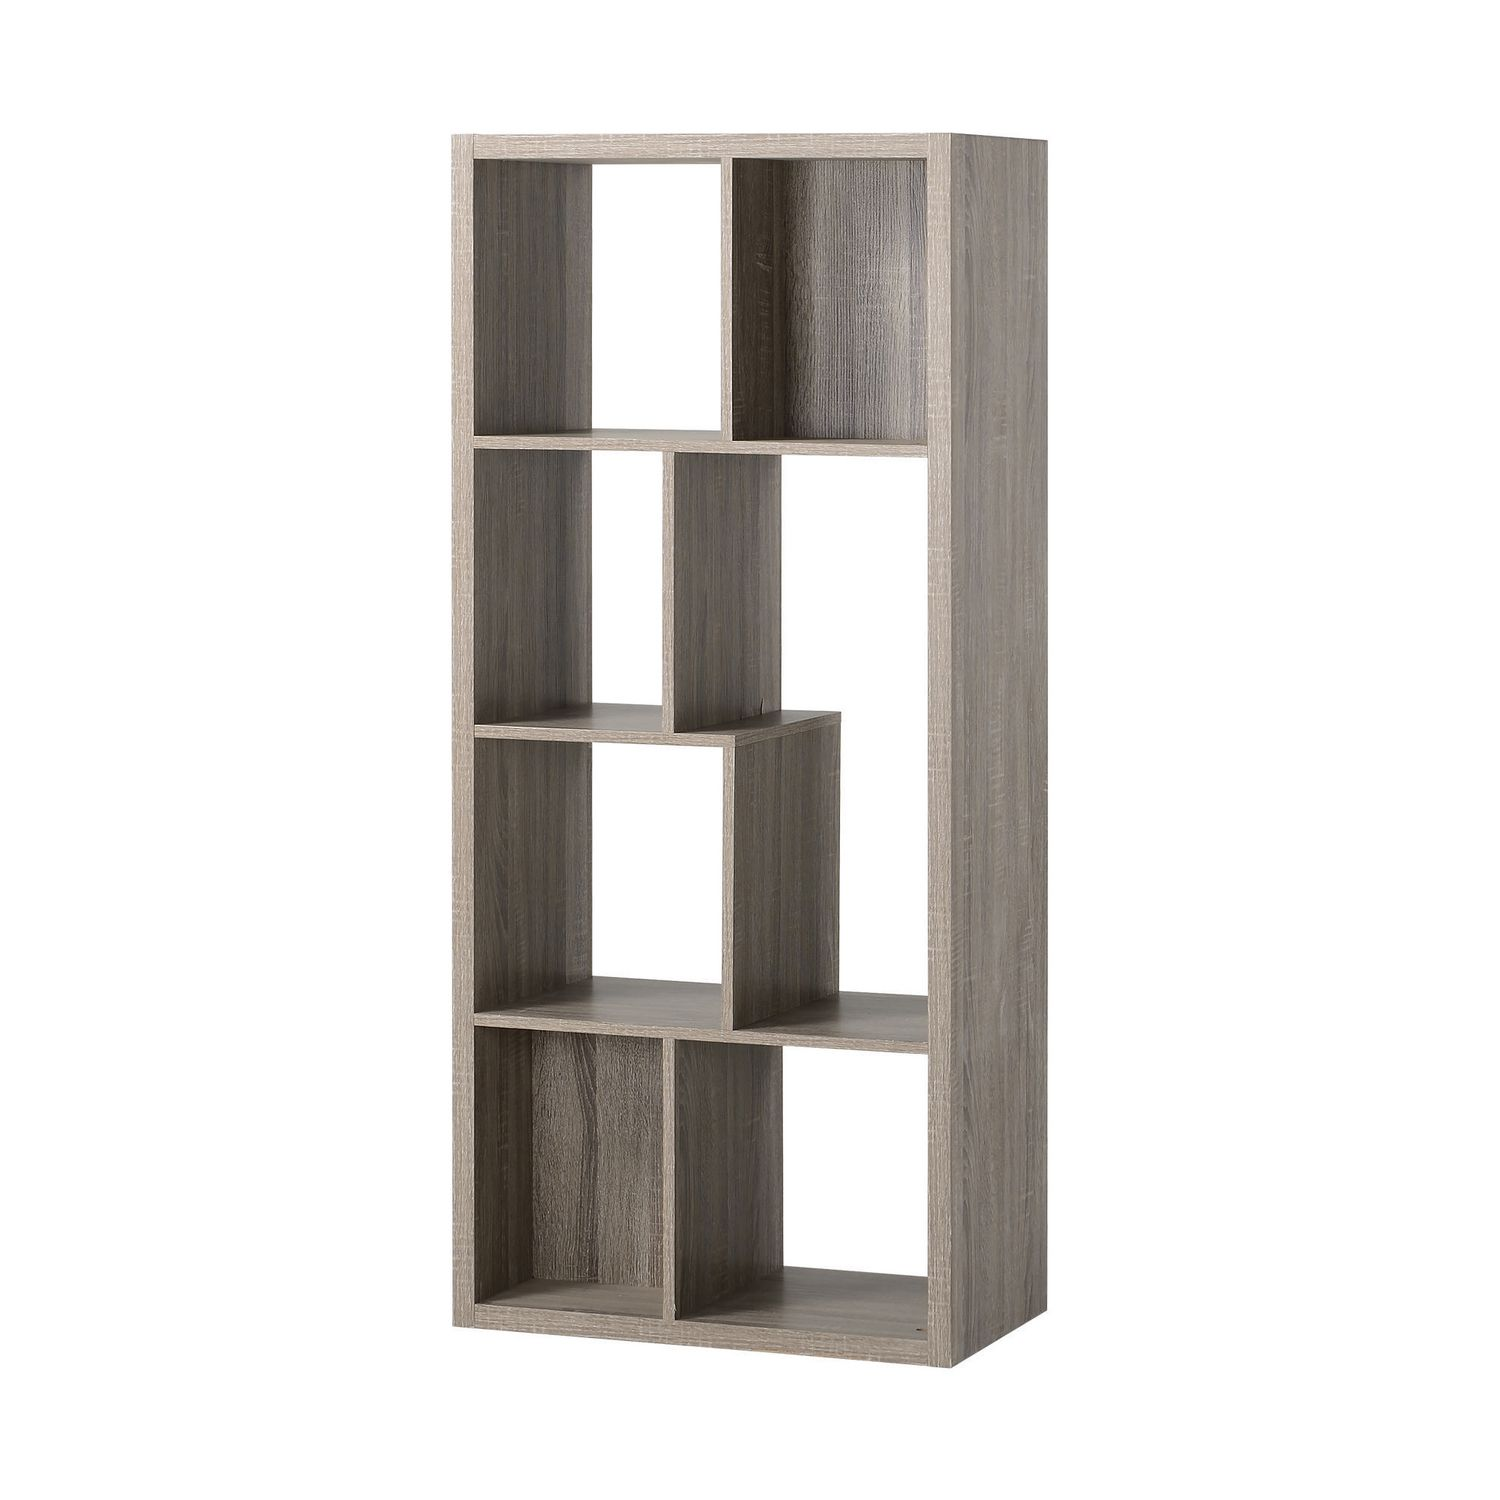 Homestar 7 Compartment Shelving Console in Reclaimed Wood ...